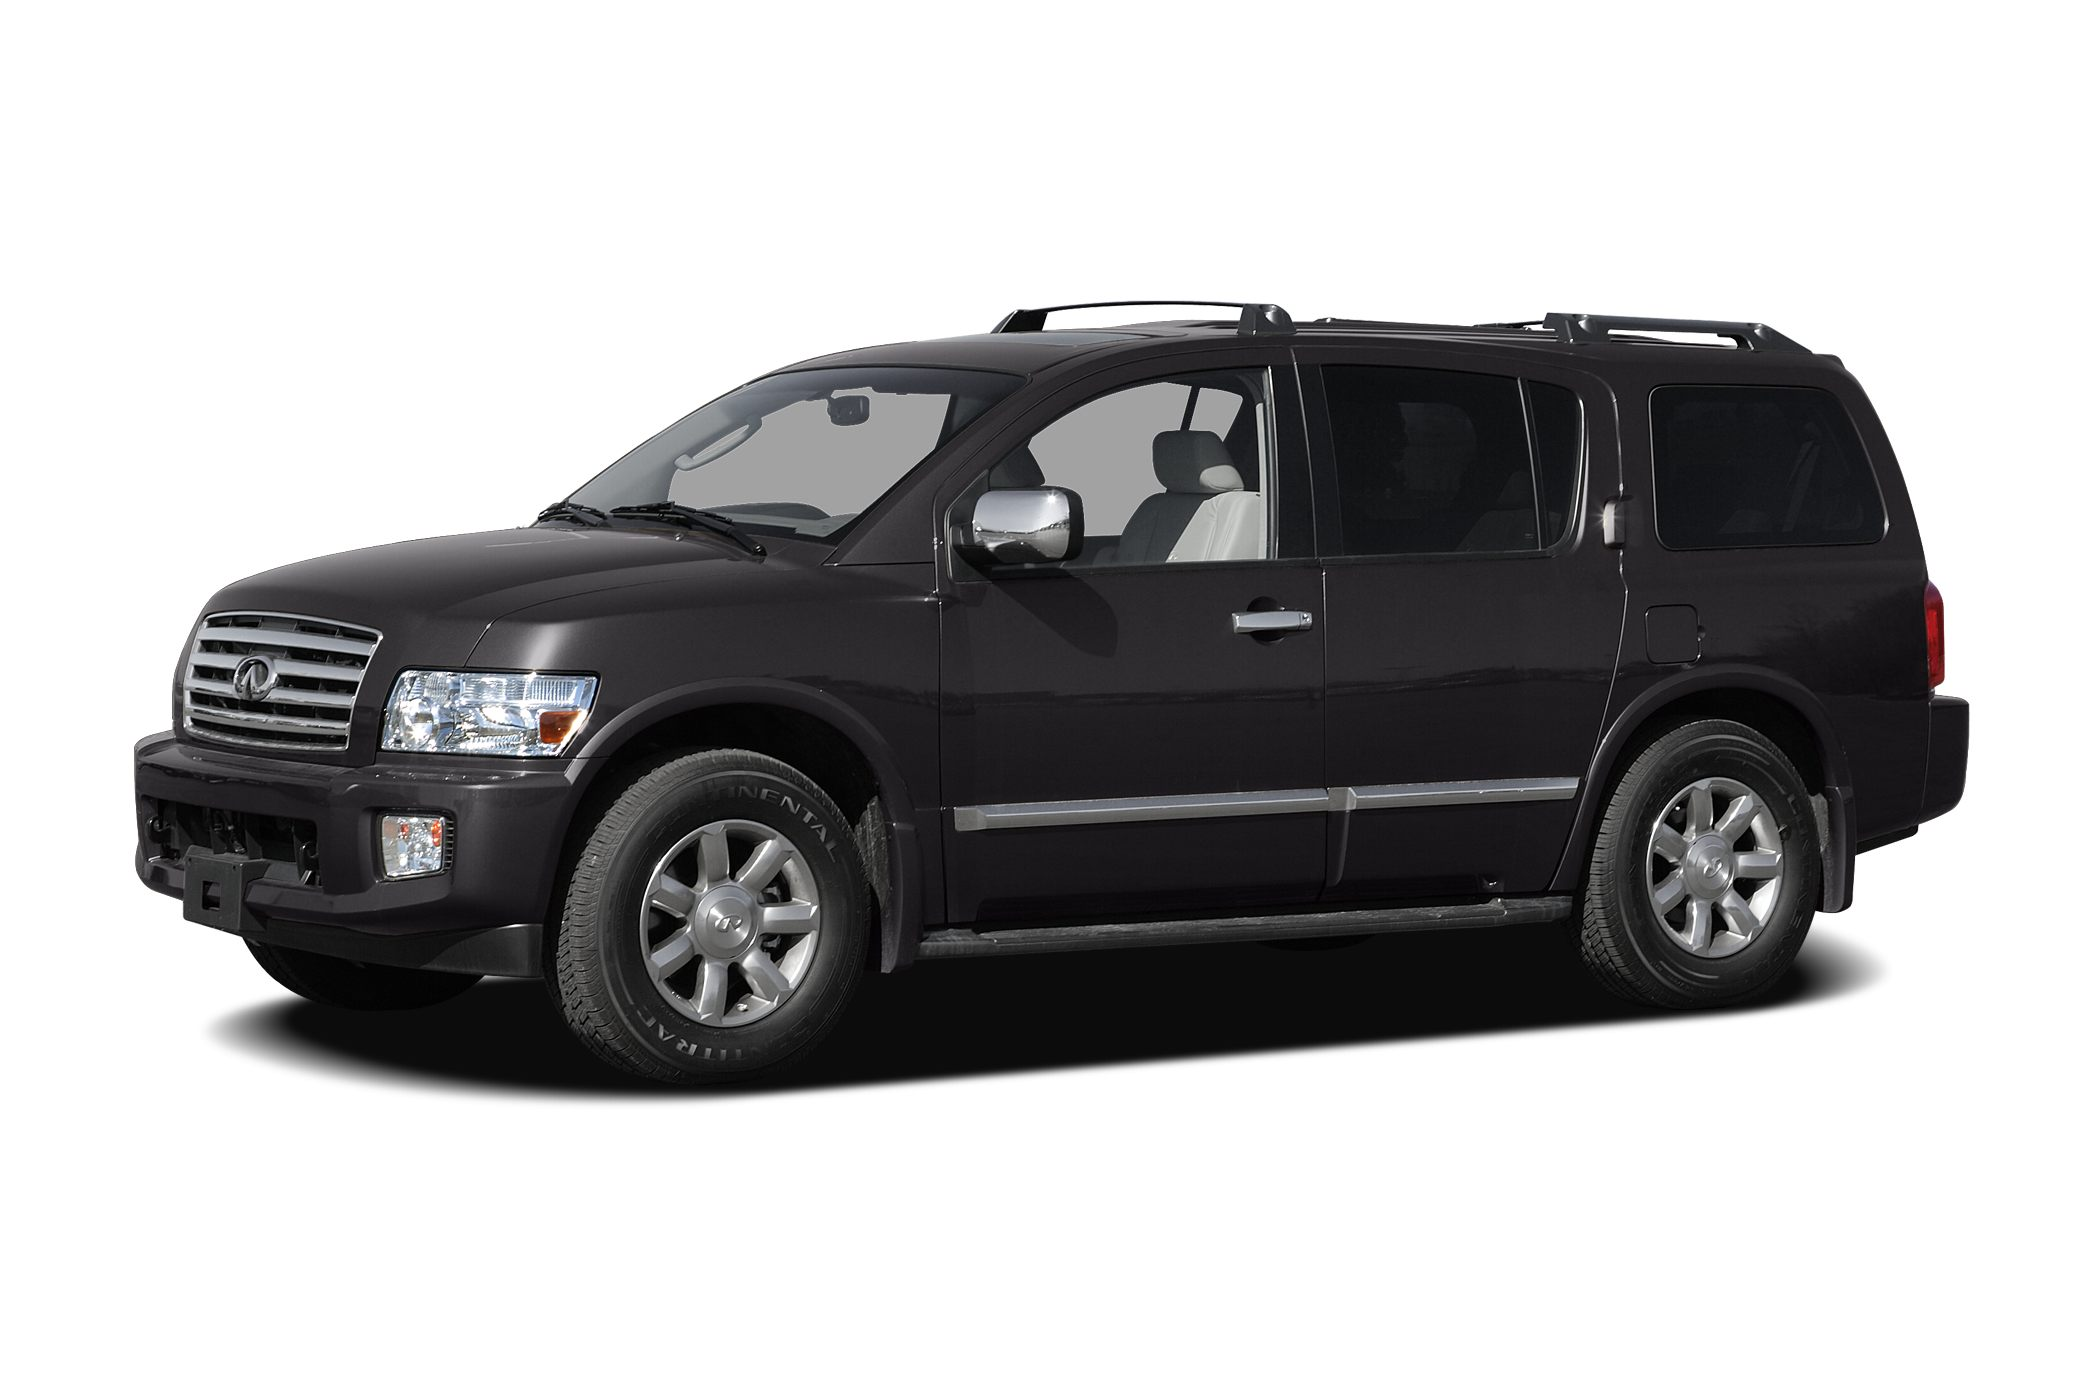 2007 Infiniti QX56 SUV for sale in Little Rock for $24,991 with 98,088 miles.